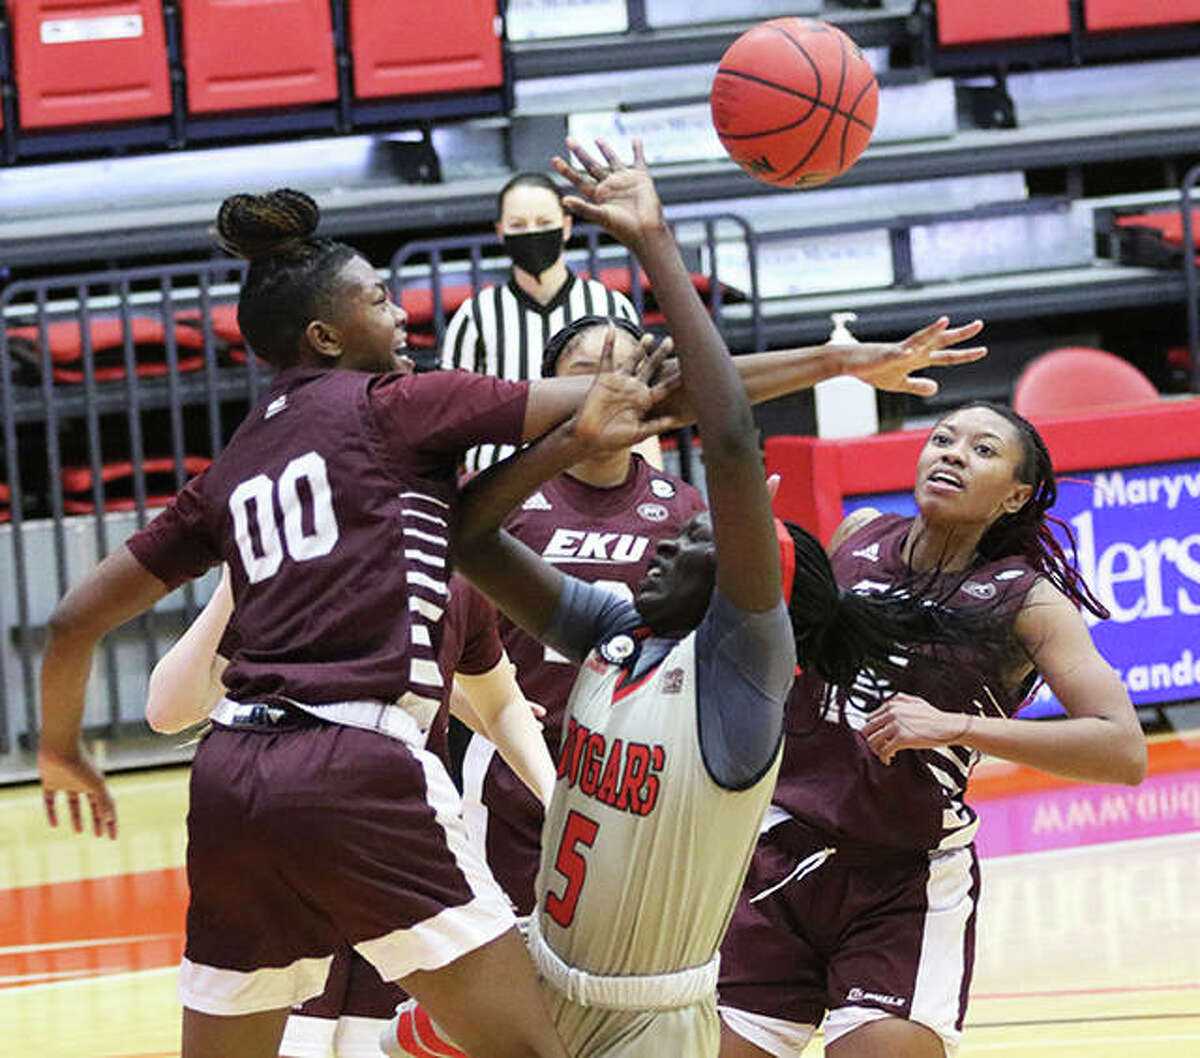 SIUE's Ajulu Thatha (5) draws a foul from an Eastern Kentucky shot blocker during a Jan. 14 game at First Community Arena in Edwardsville. The Cougars lost Thursday night at Austin Peay.